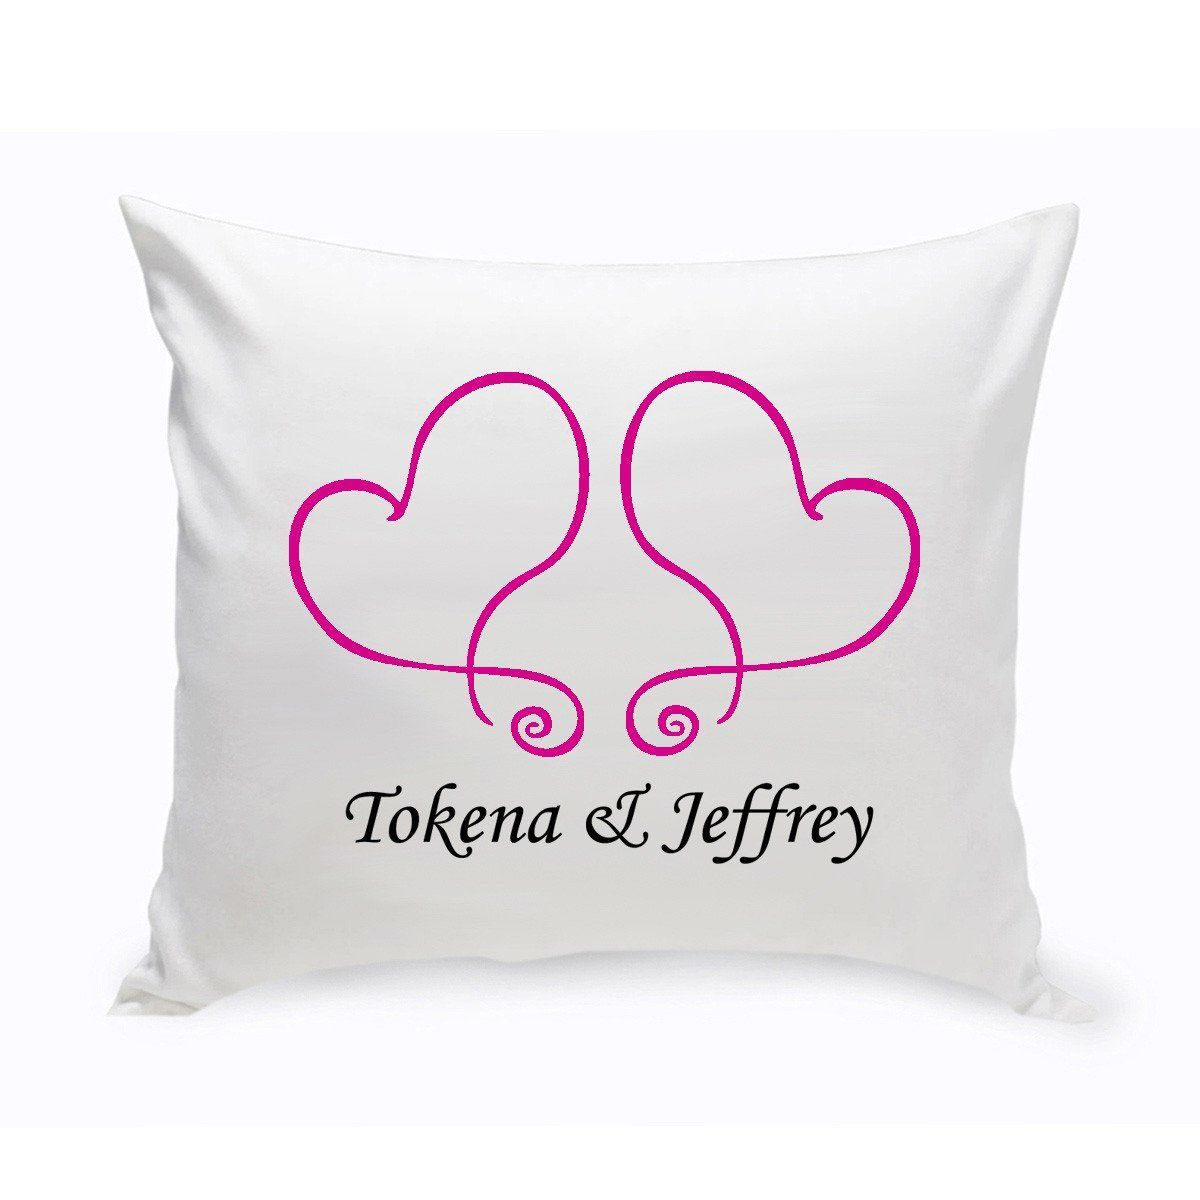 Personalized Heart Throw Pillow : Personalized Couples Unity Hearts Throw Pillow